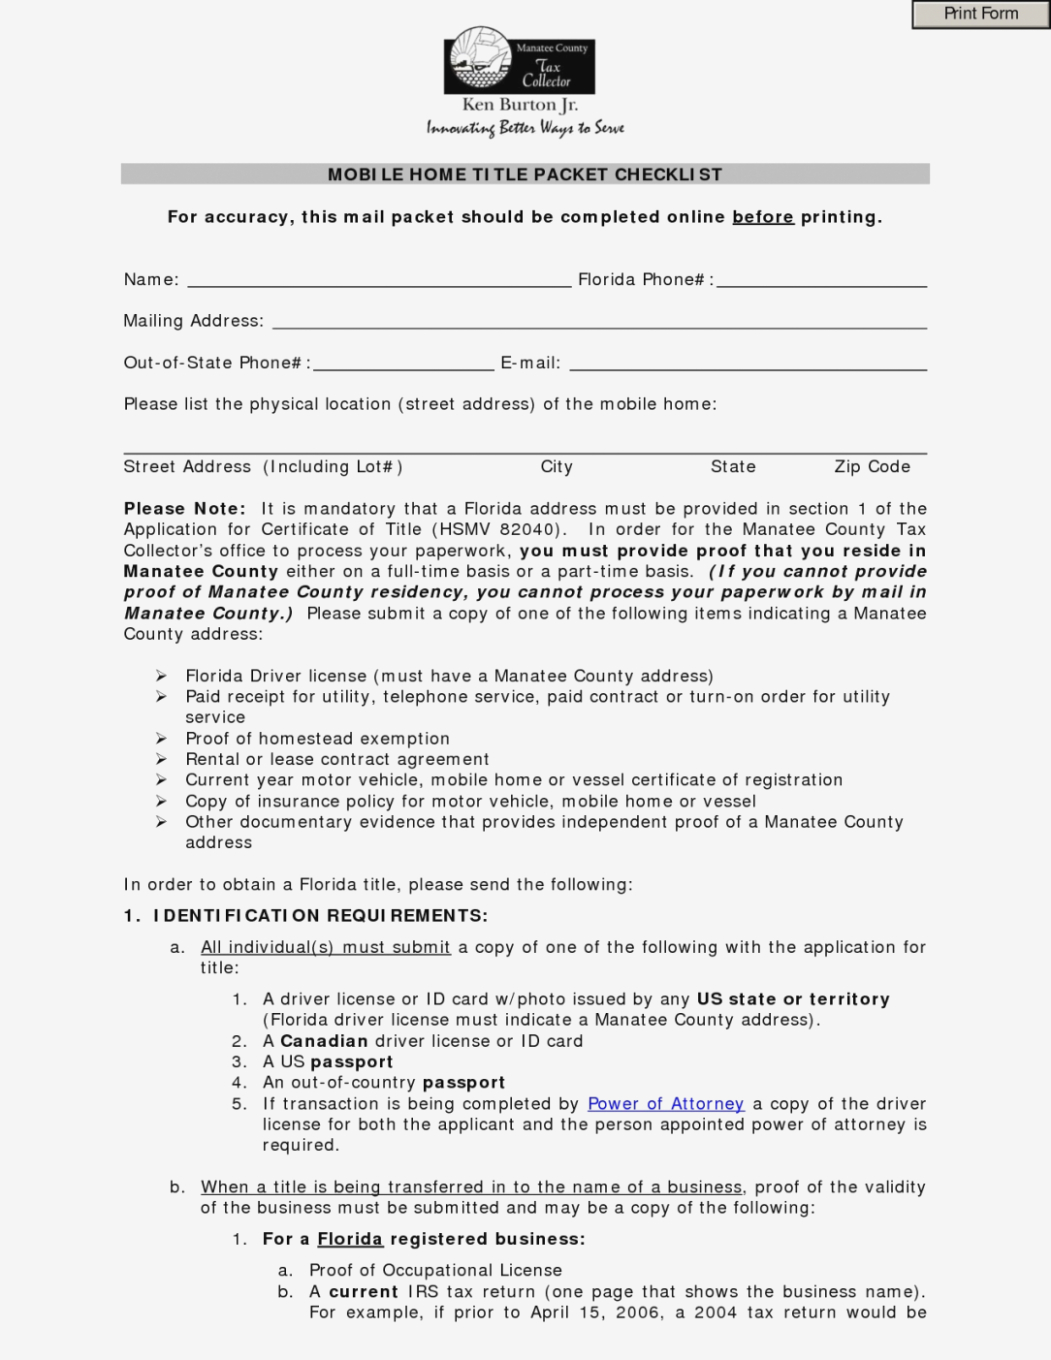 Credit Sale Agreement Template – Mobile Home Purchase Agreement Form Throughout Credit Sale Agreement Template